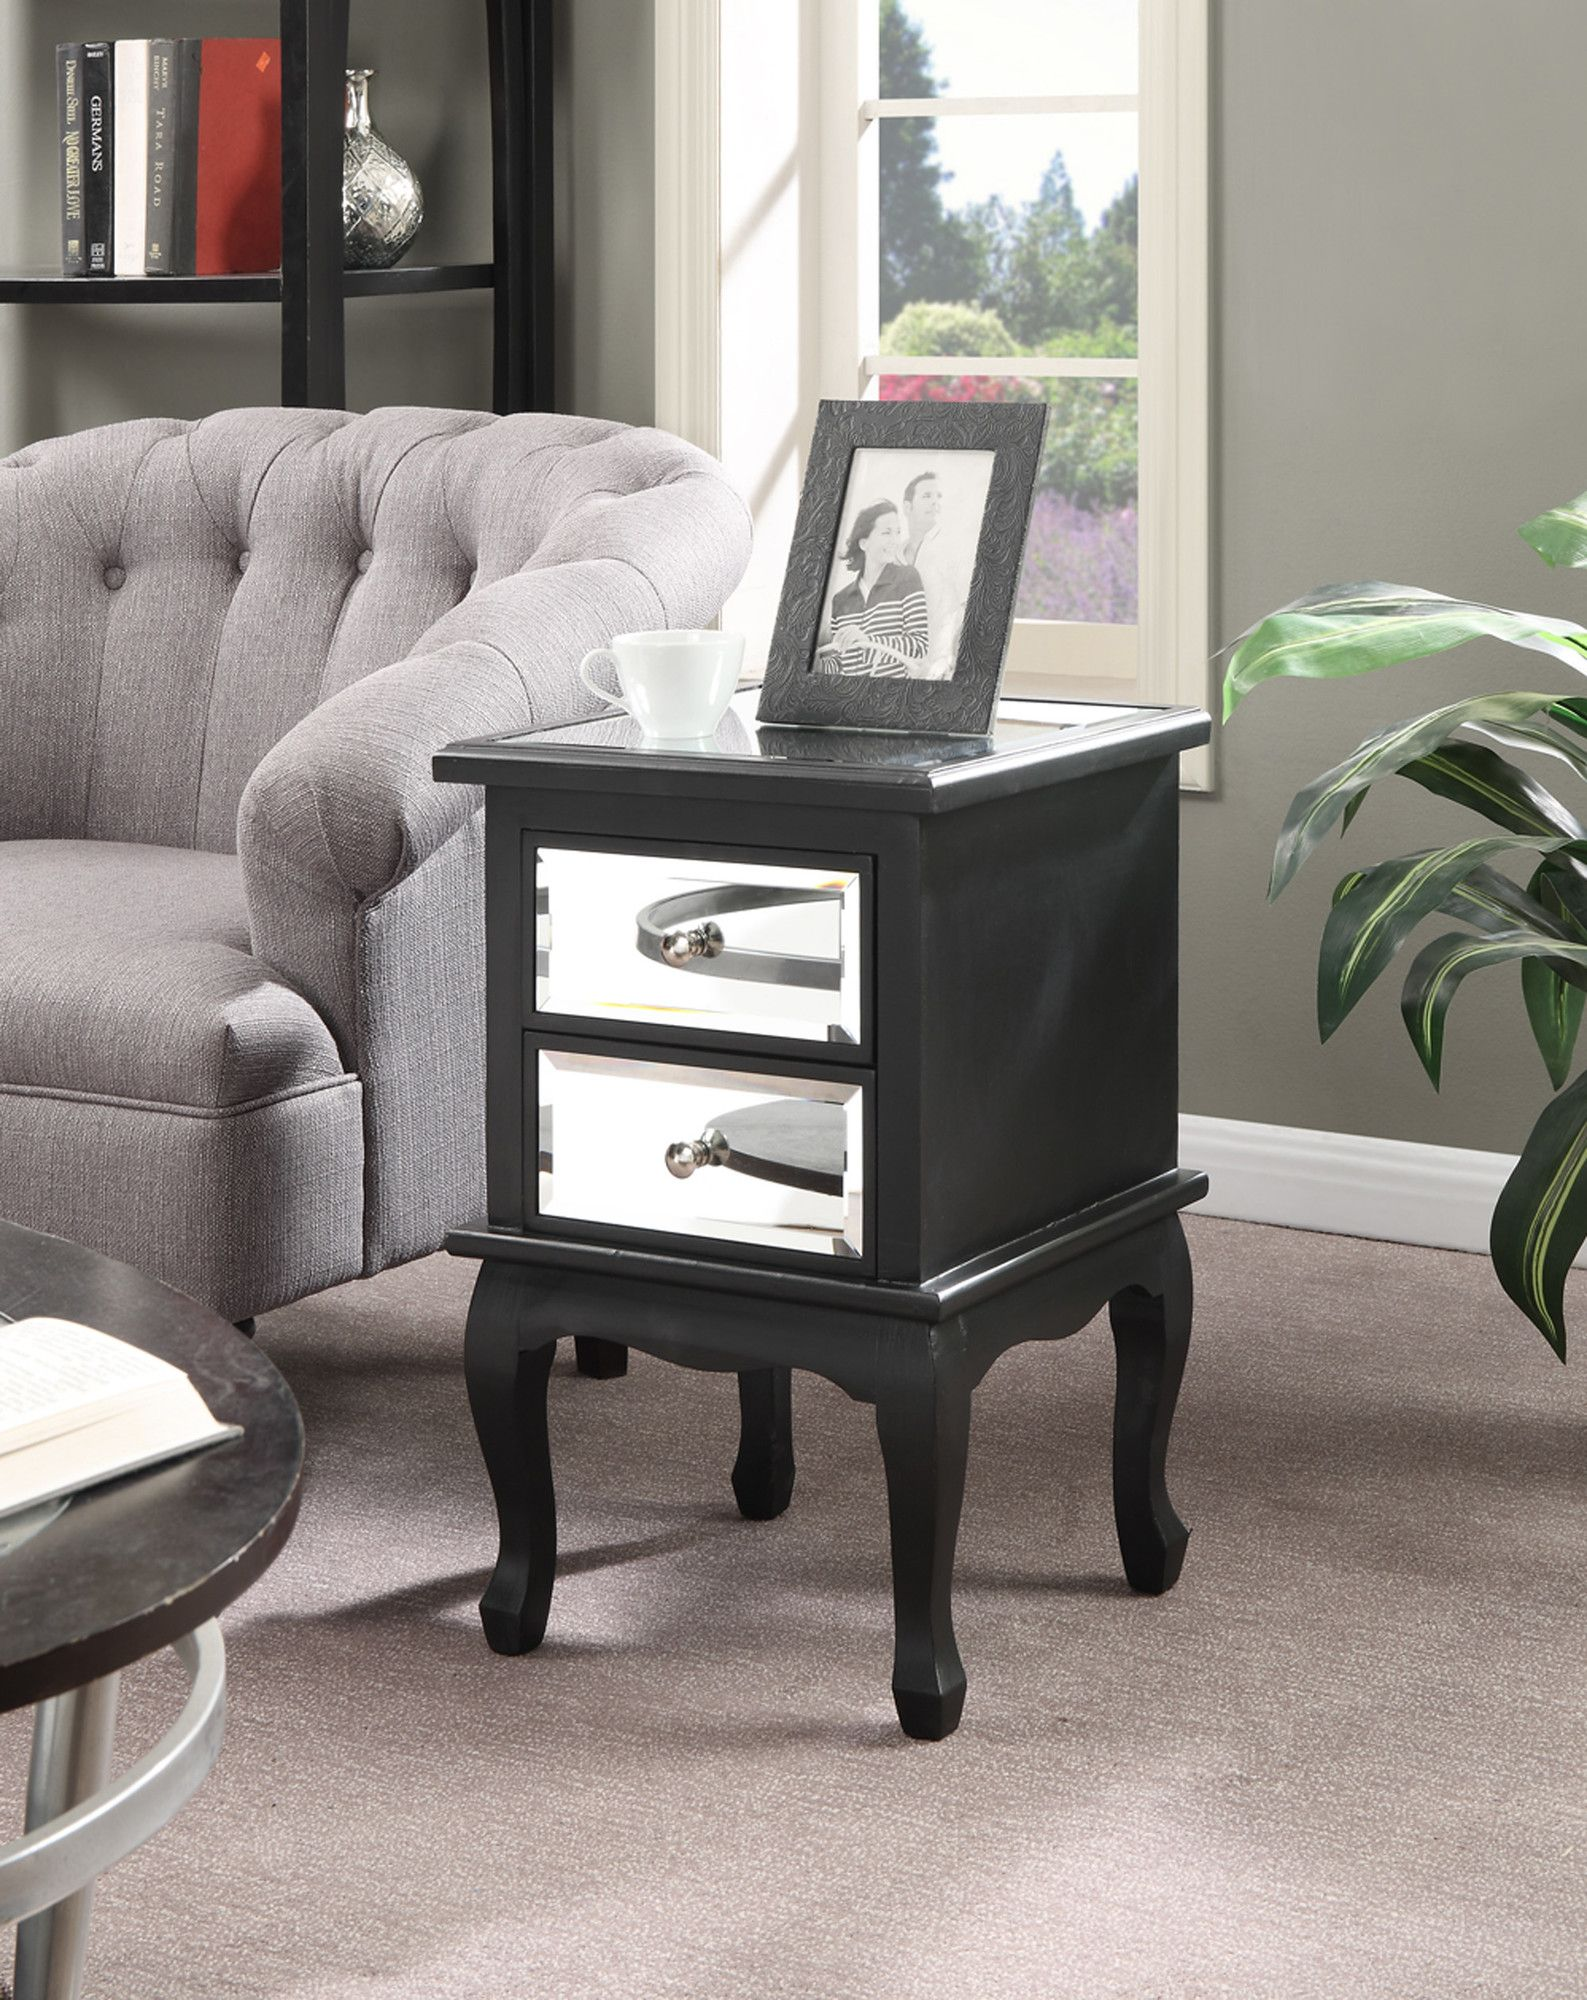 Mirrored Bedside Table With Drawers: Halstead 2 Drawer Mirrored End Table